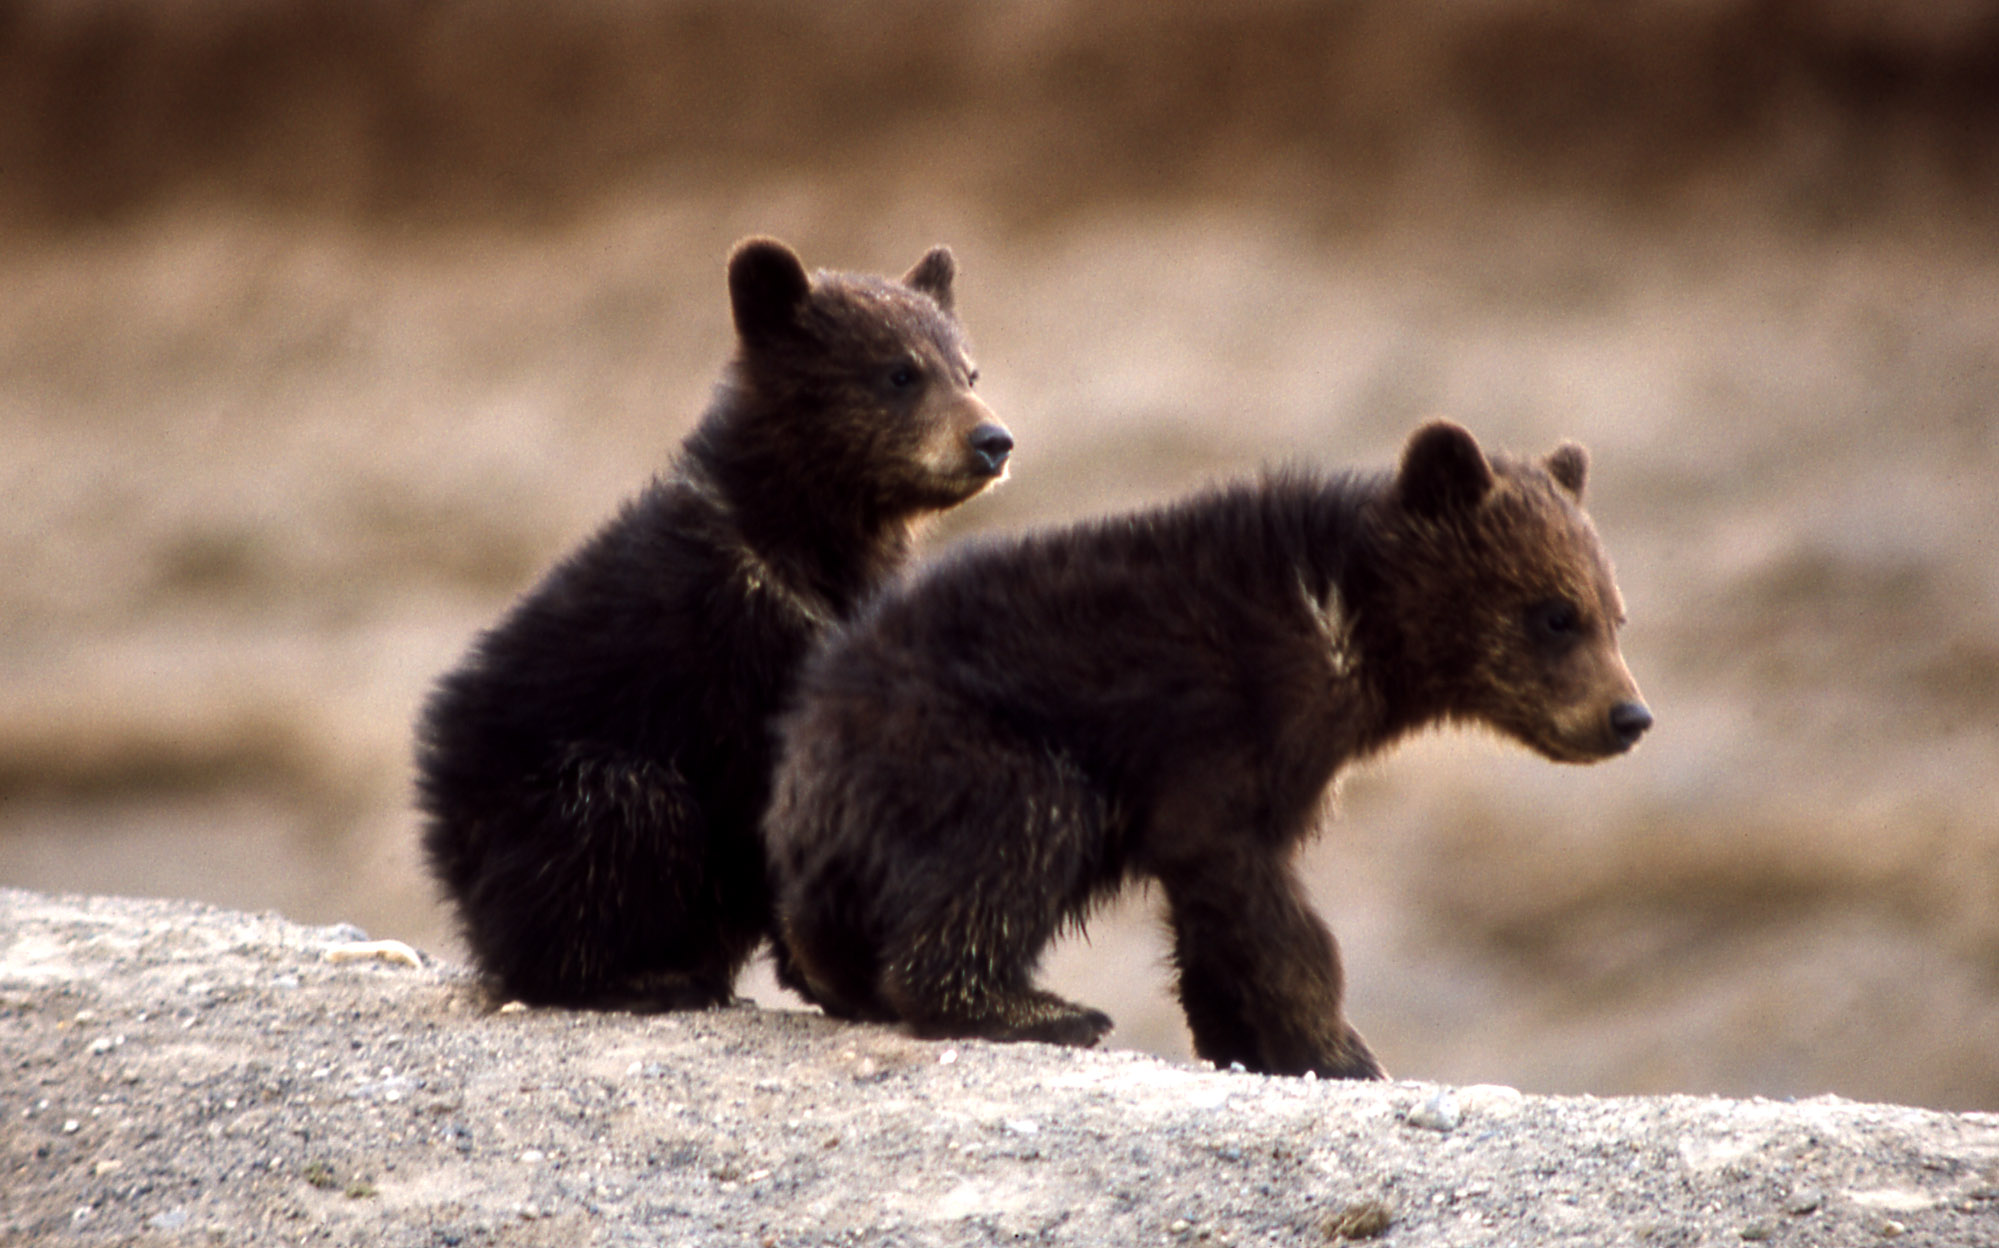 Grizzly bears cubs - photo#7